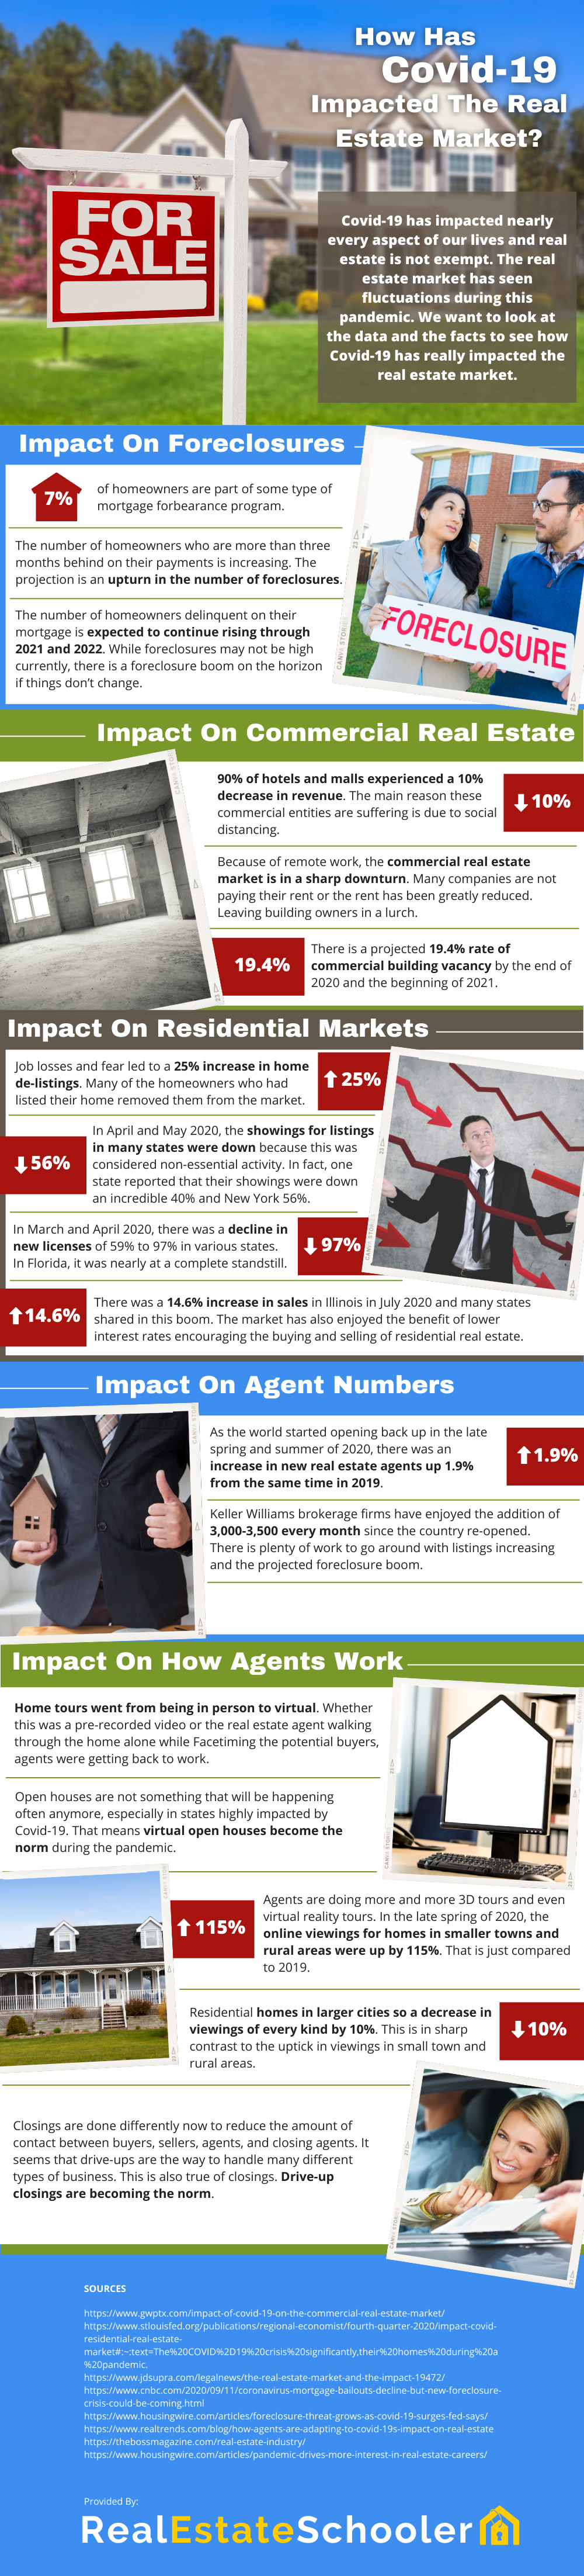 covid-19 impact on real estate market